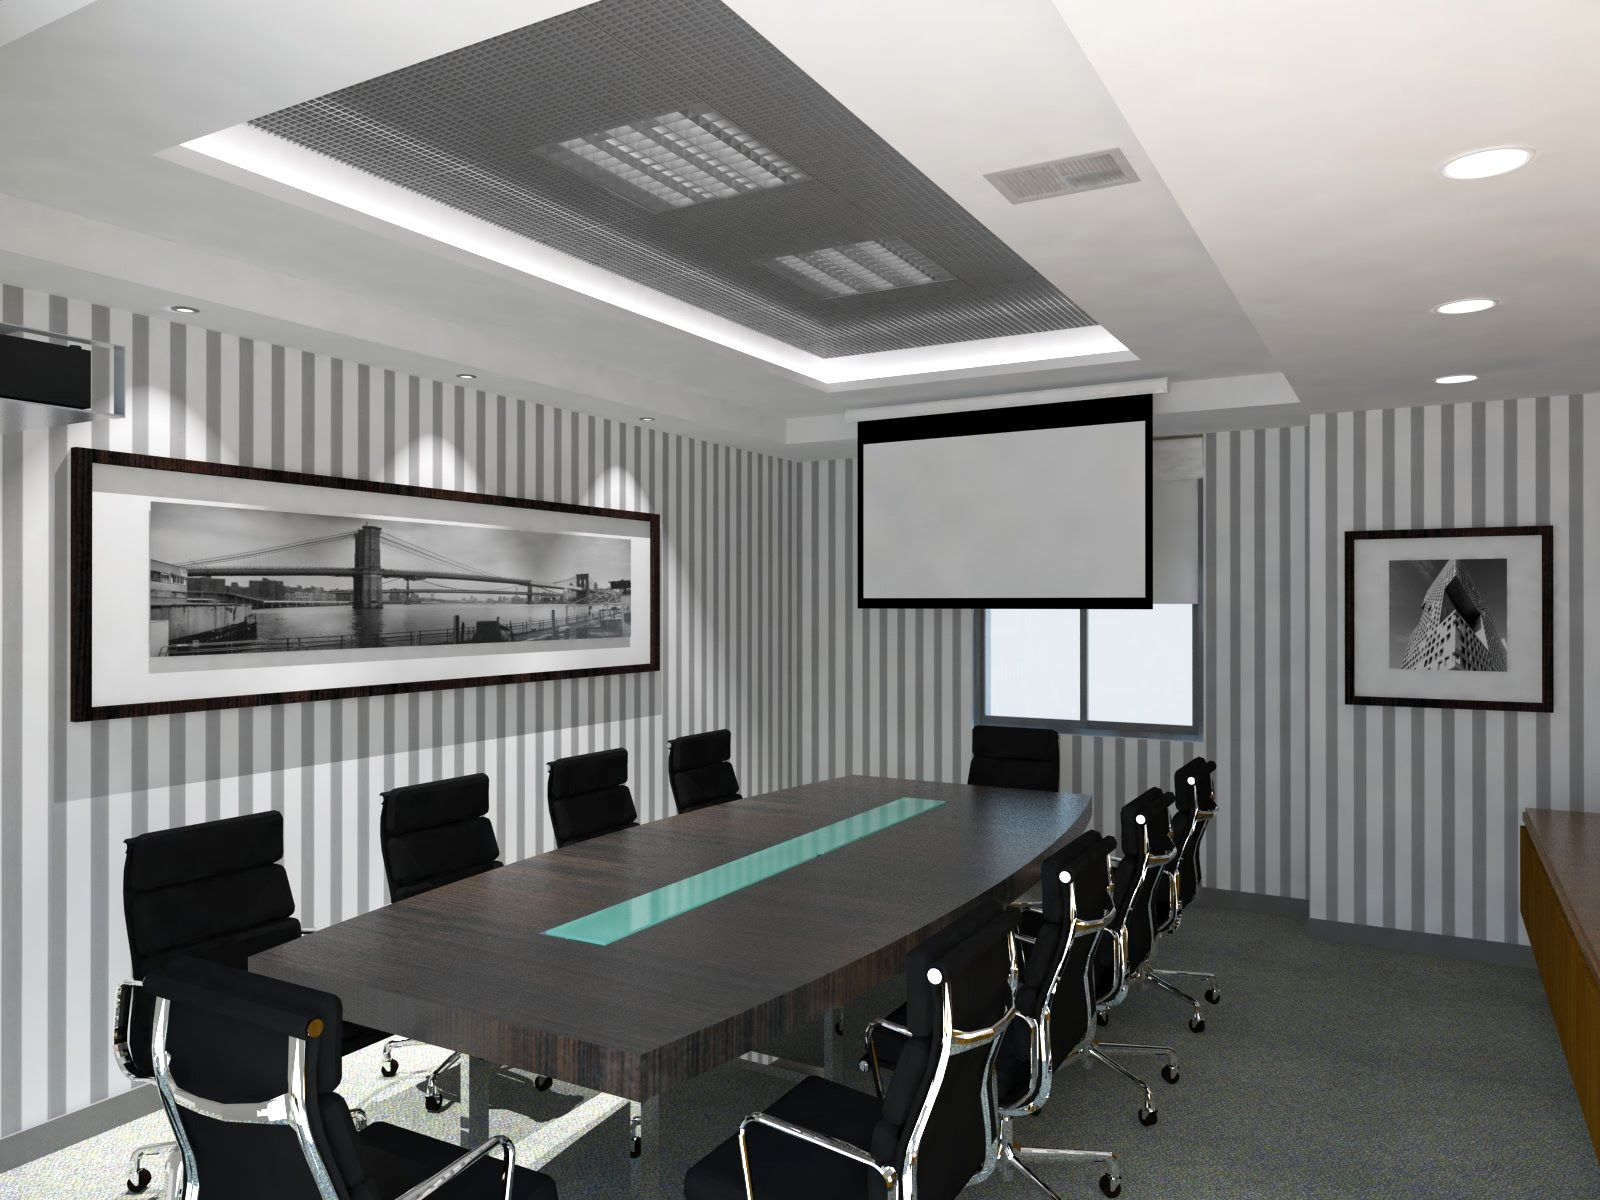 Oniria sala de reuniones oficinas ideas pinterest for Areas de una oficina